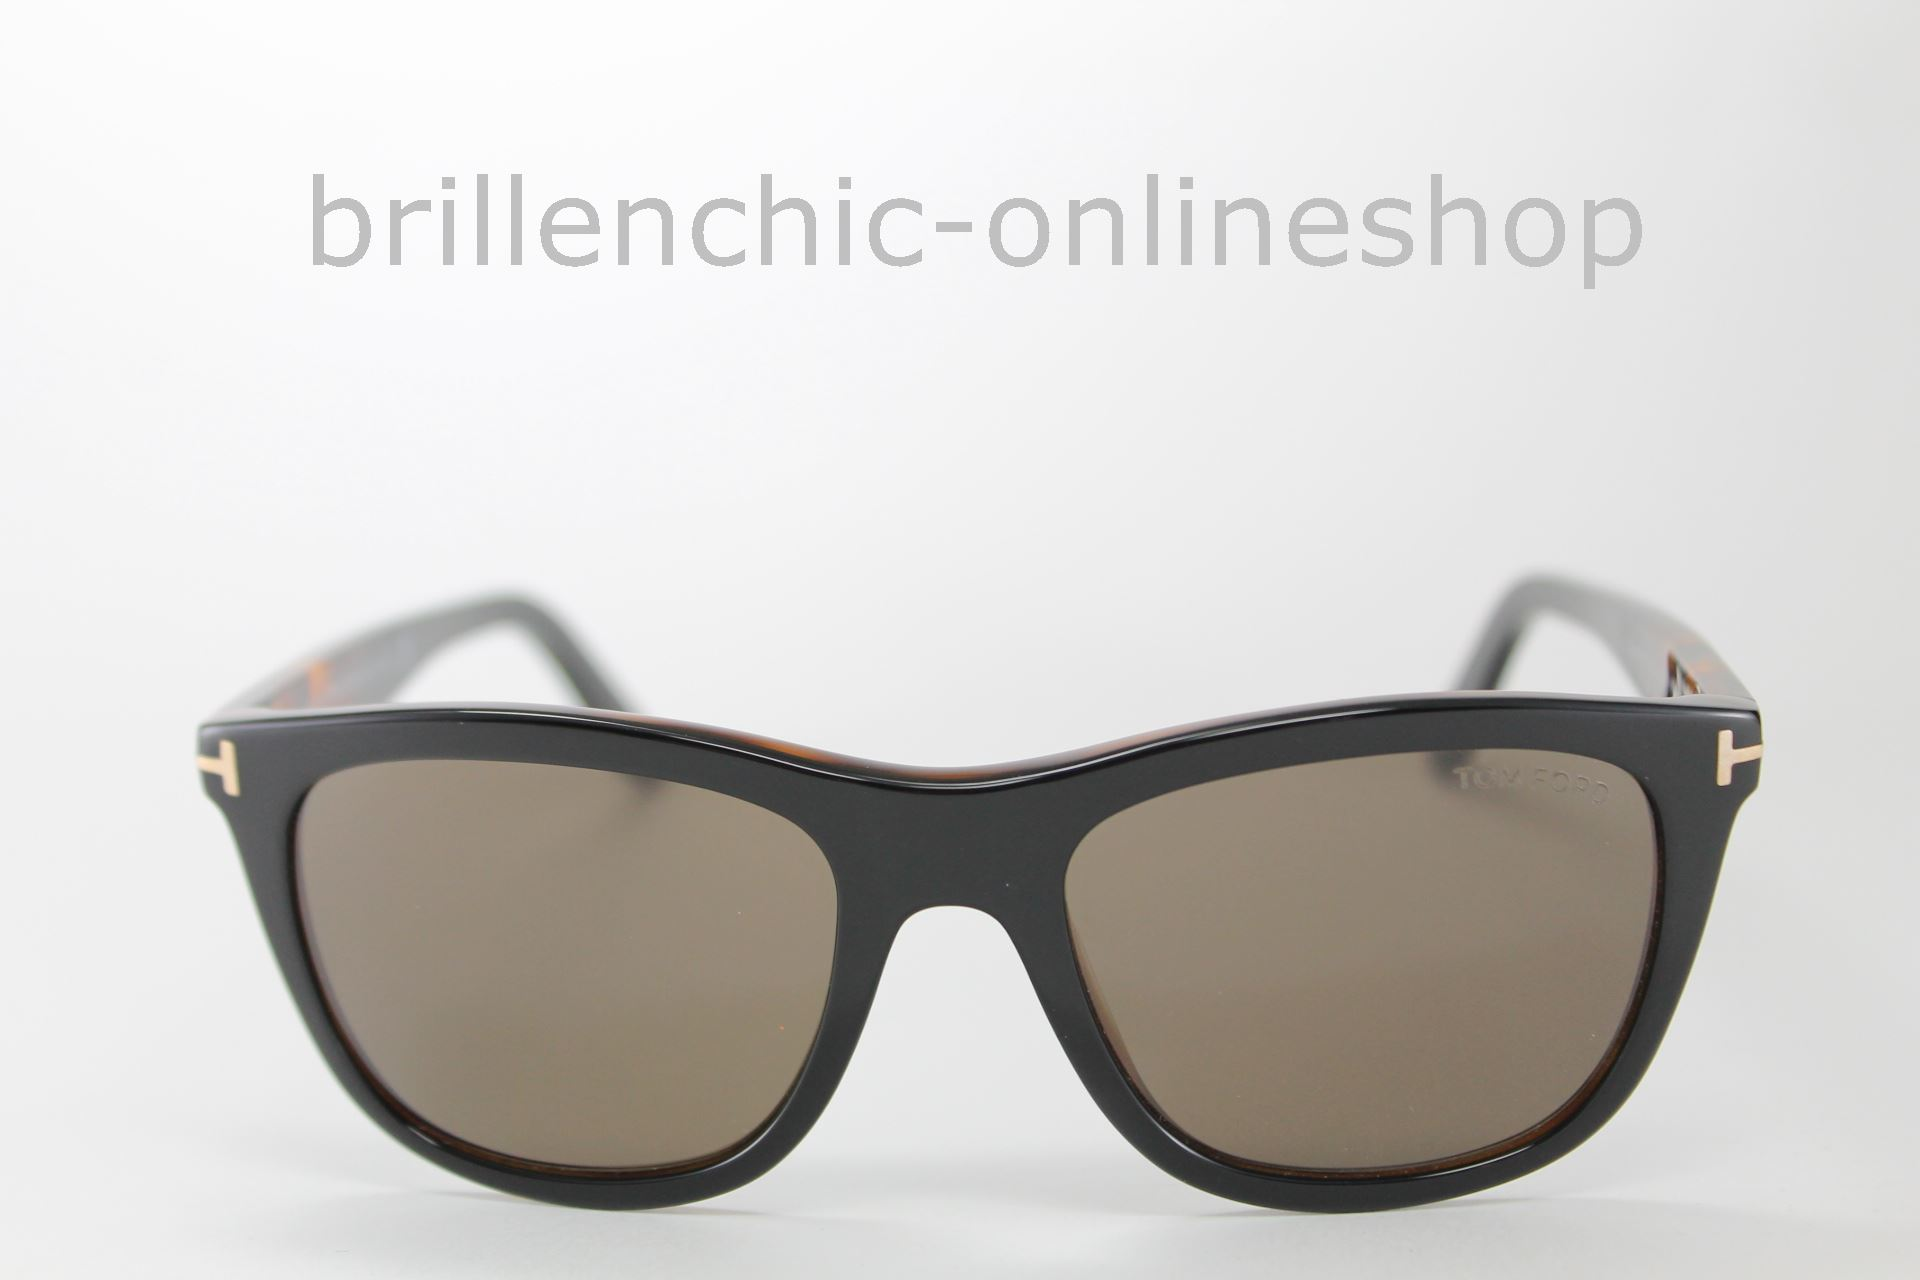 ec0c6a7cb8 Brillenchic-onlineshop in Berlin - TOM FORD TF 500 05J ANDREW